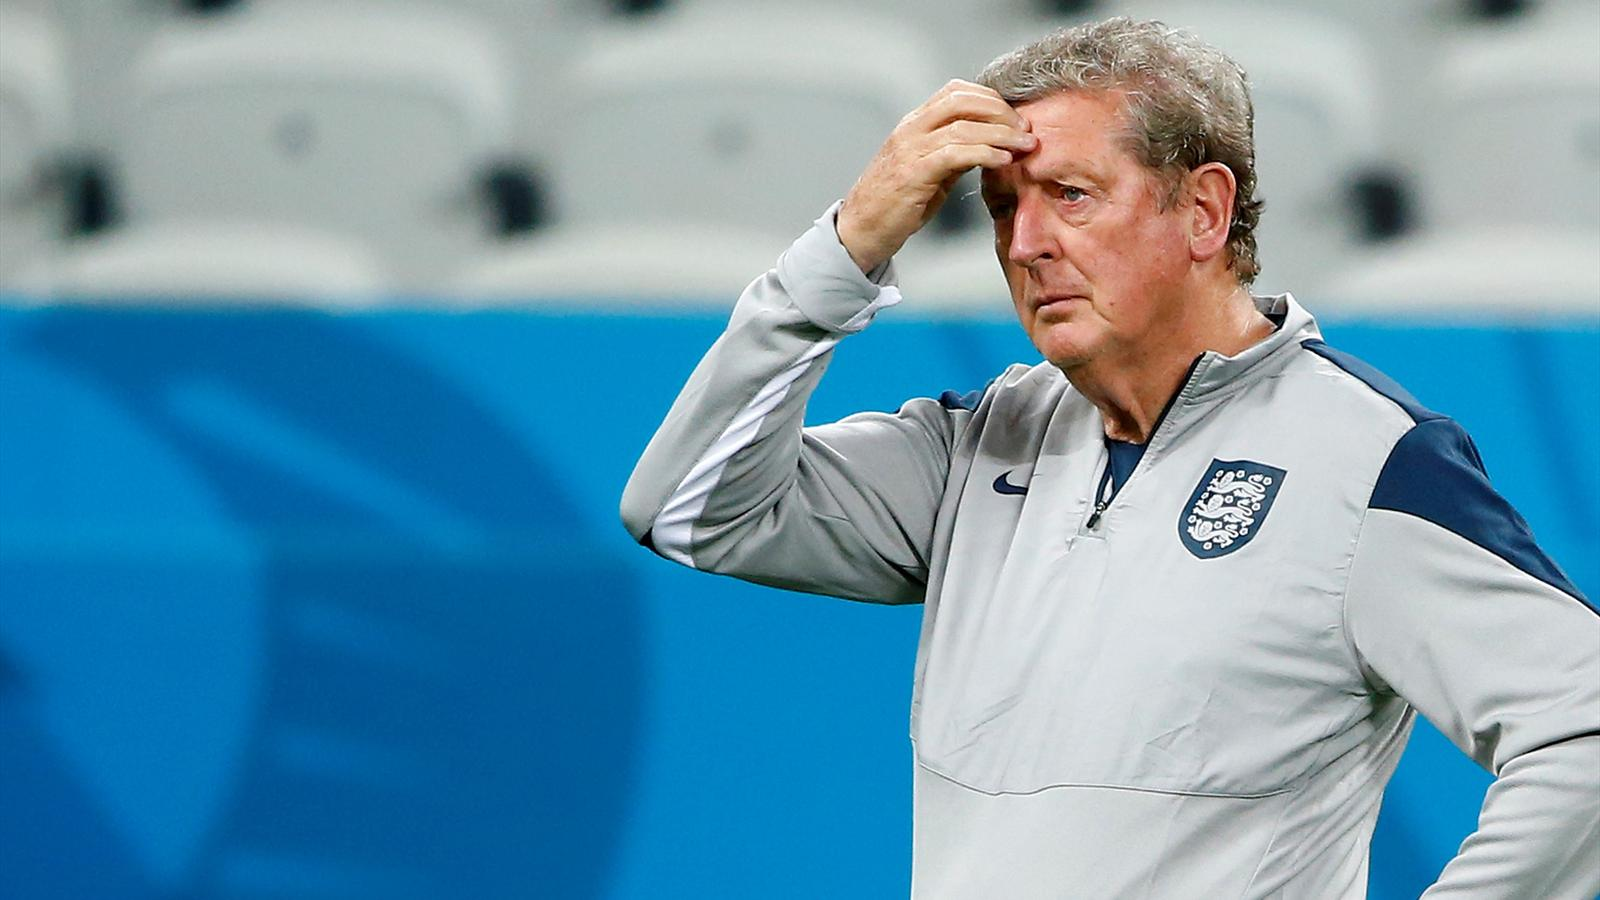 England's manager Roy Hodgson attends a training session at the Arena Corinthians stadium in Sao Paulo, June 18, 2014.